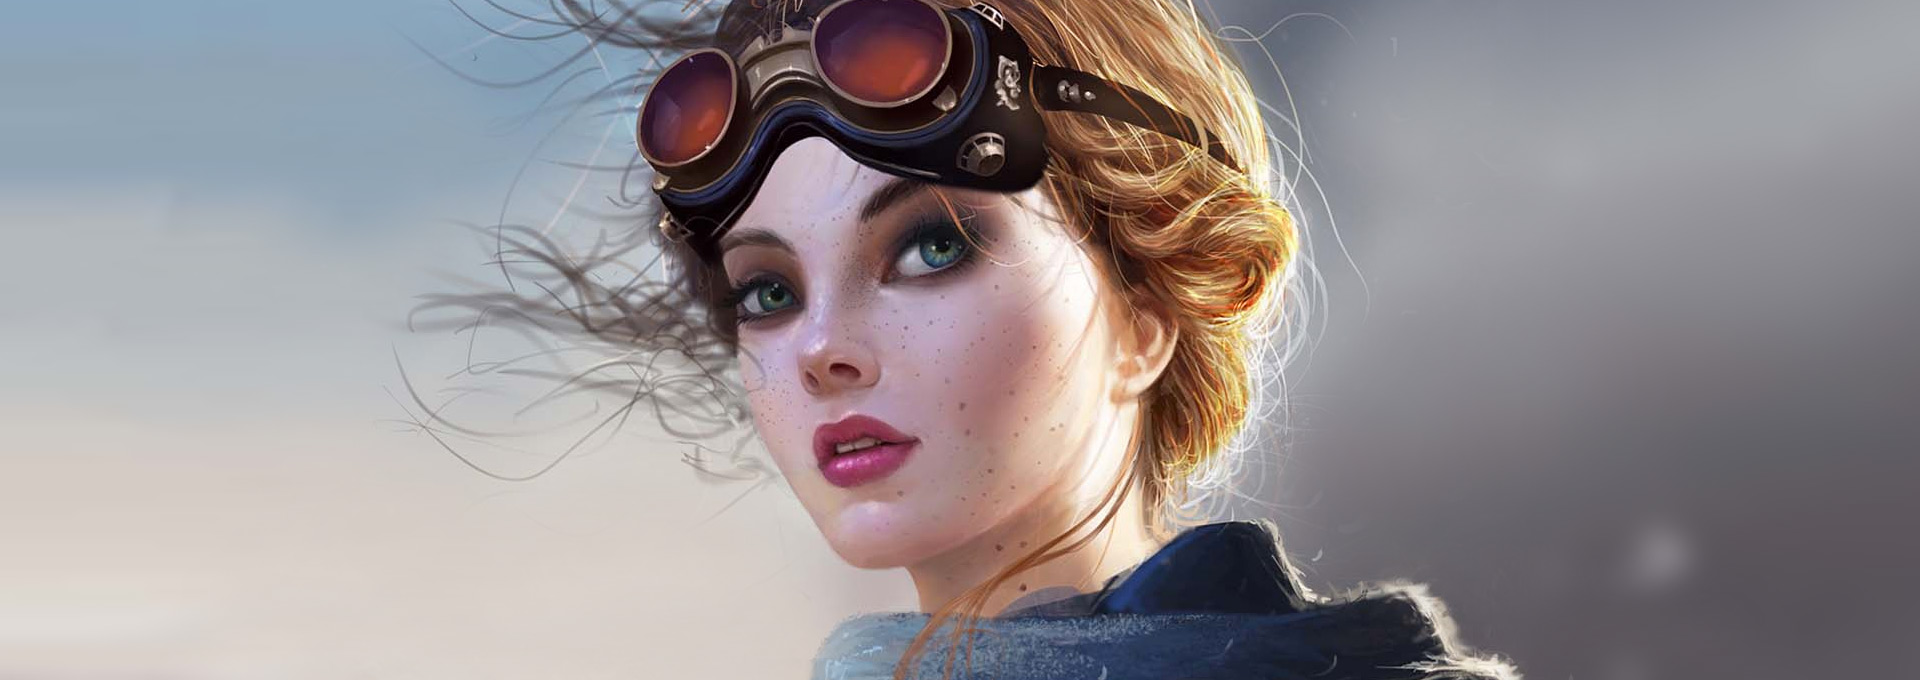 Digital Painting Inspiration Volume 14